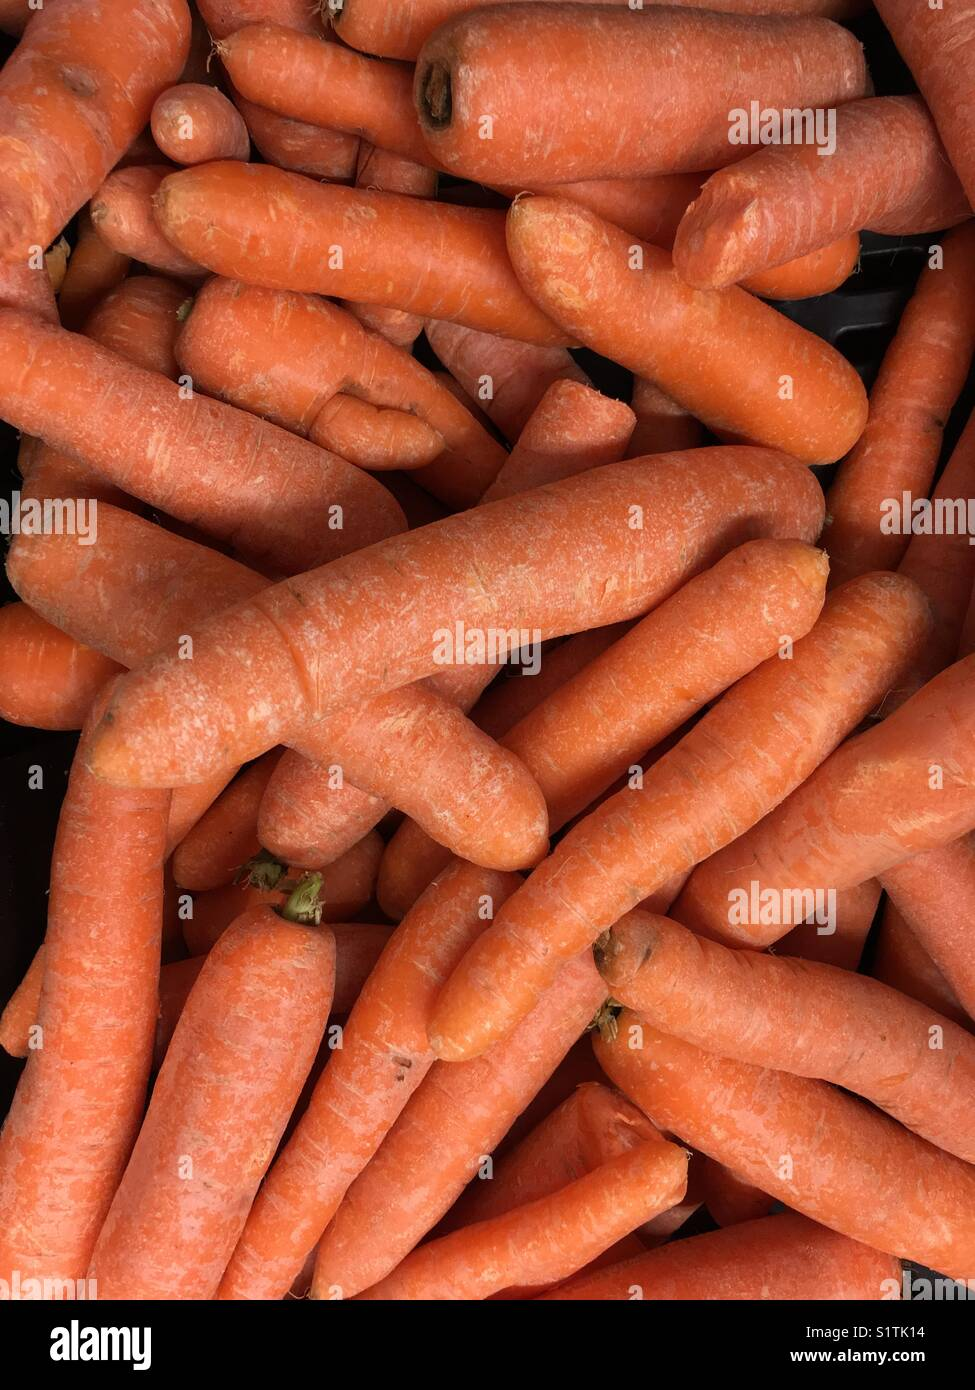 English carrots - wallpaper or background photo. - Stock Image